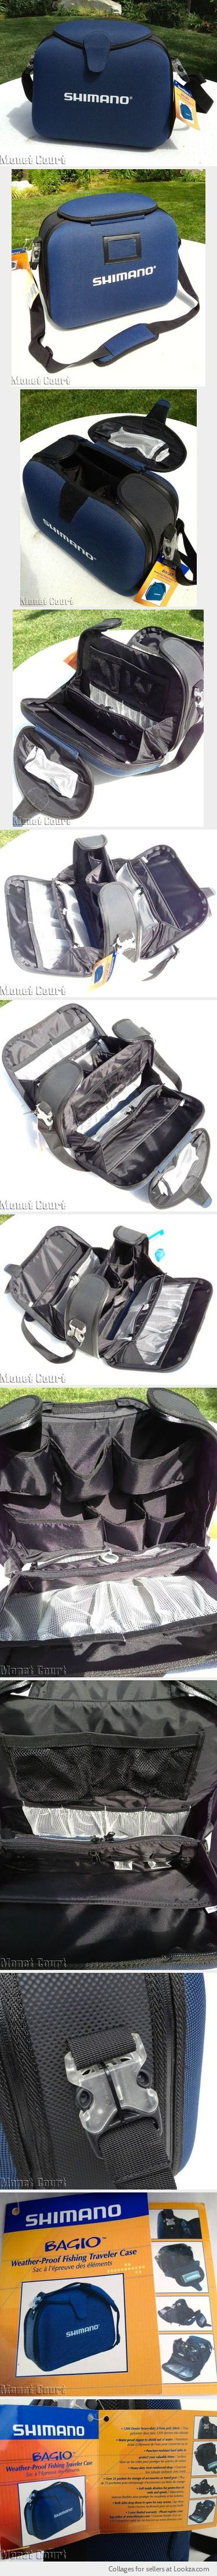 Shimano Bagio Weather-Proof Fishing Traveler Case Tackle Bag - Found on Lookza.com